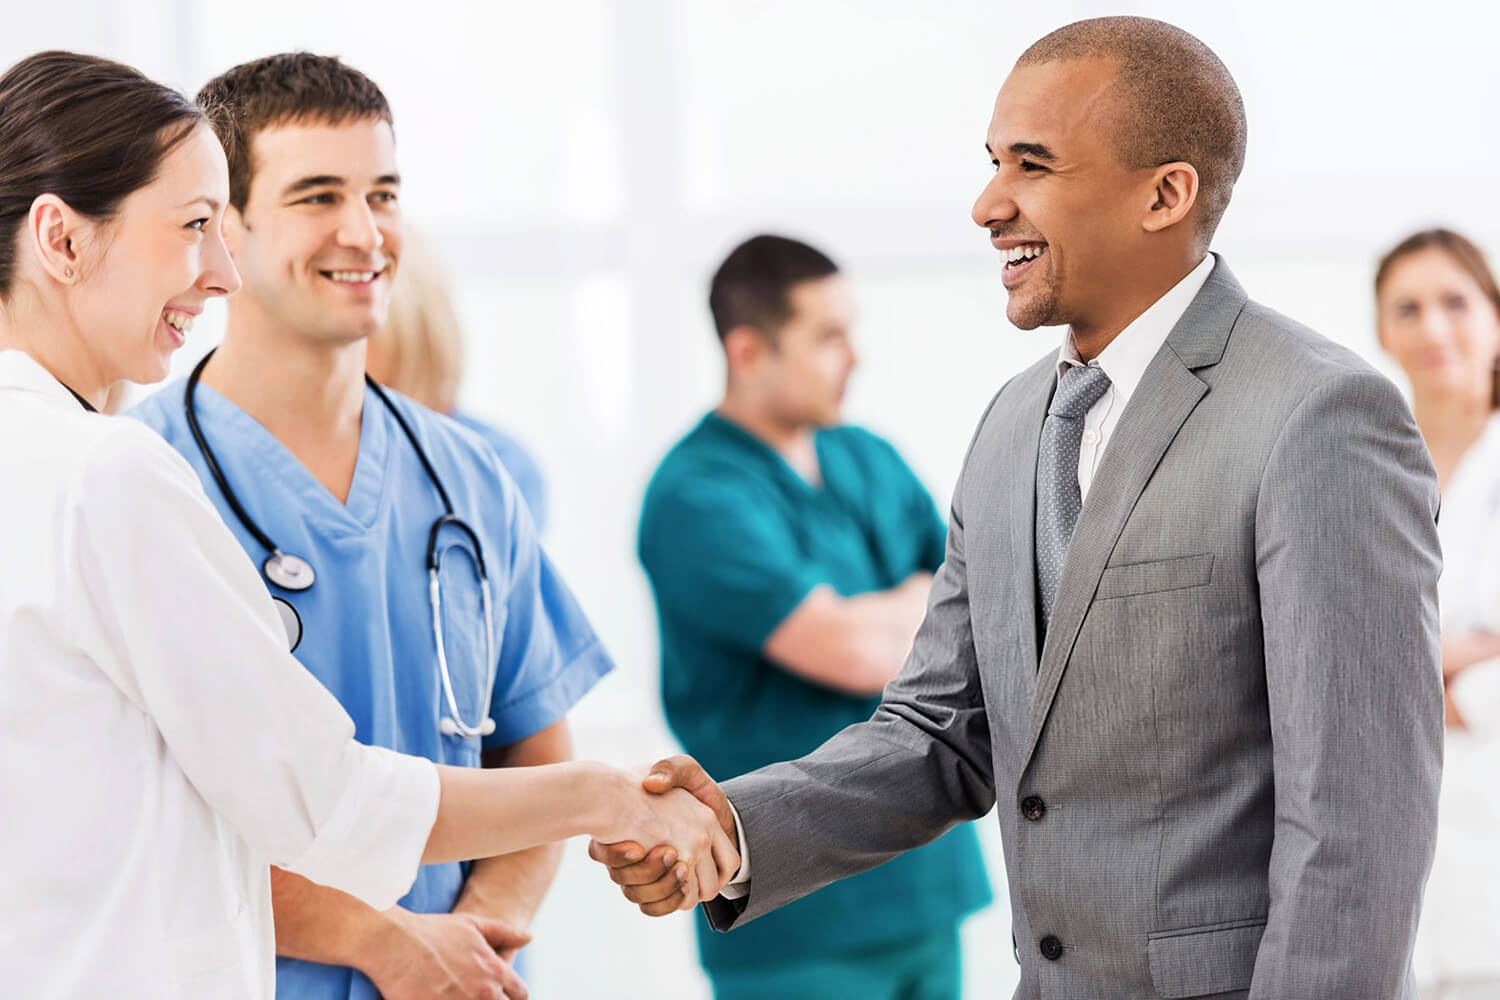 8 cna interview questions and answers - Medical Assistant Interview Questions And Answers